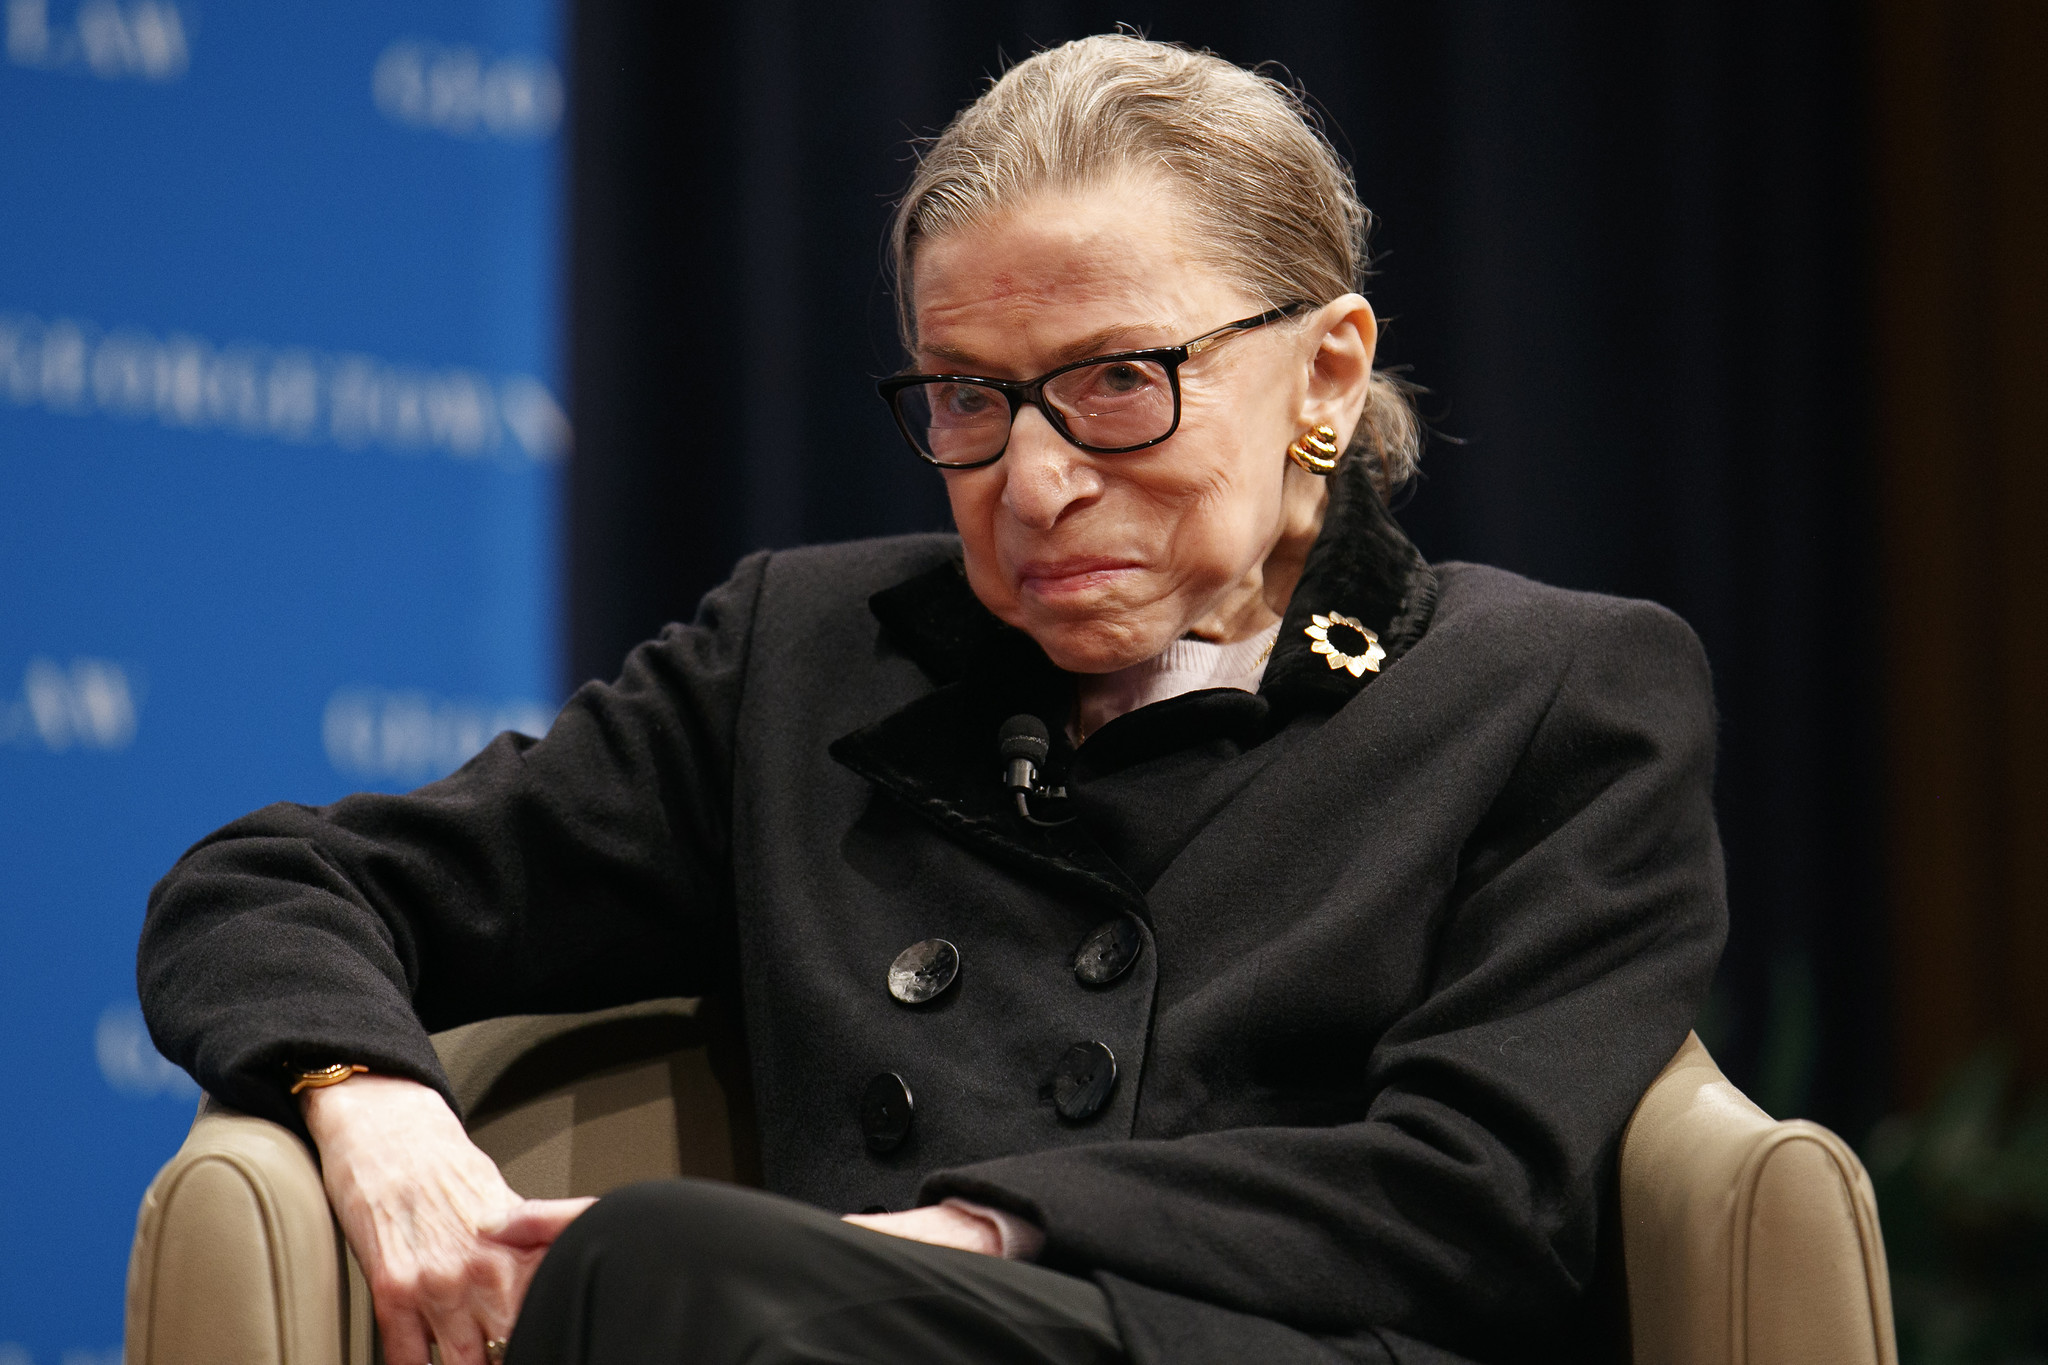 Ruth Bader Ginsburg back in hospital with flu-like symptoms